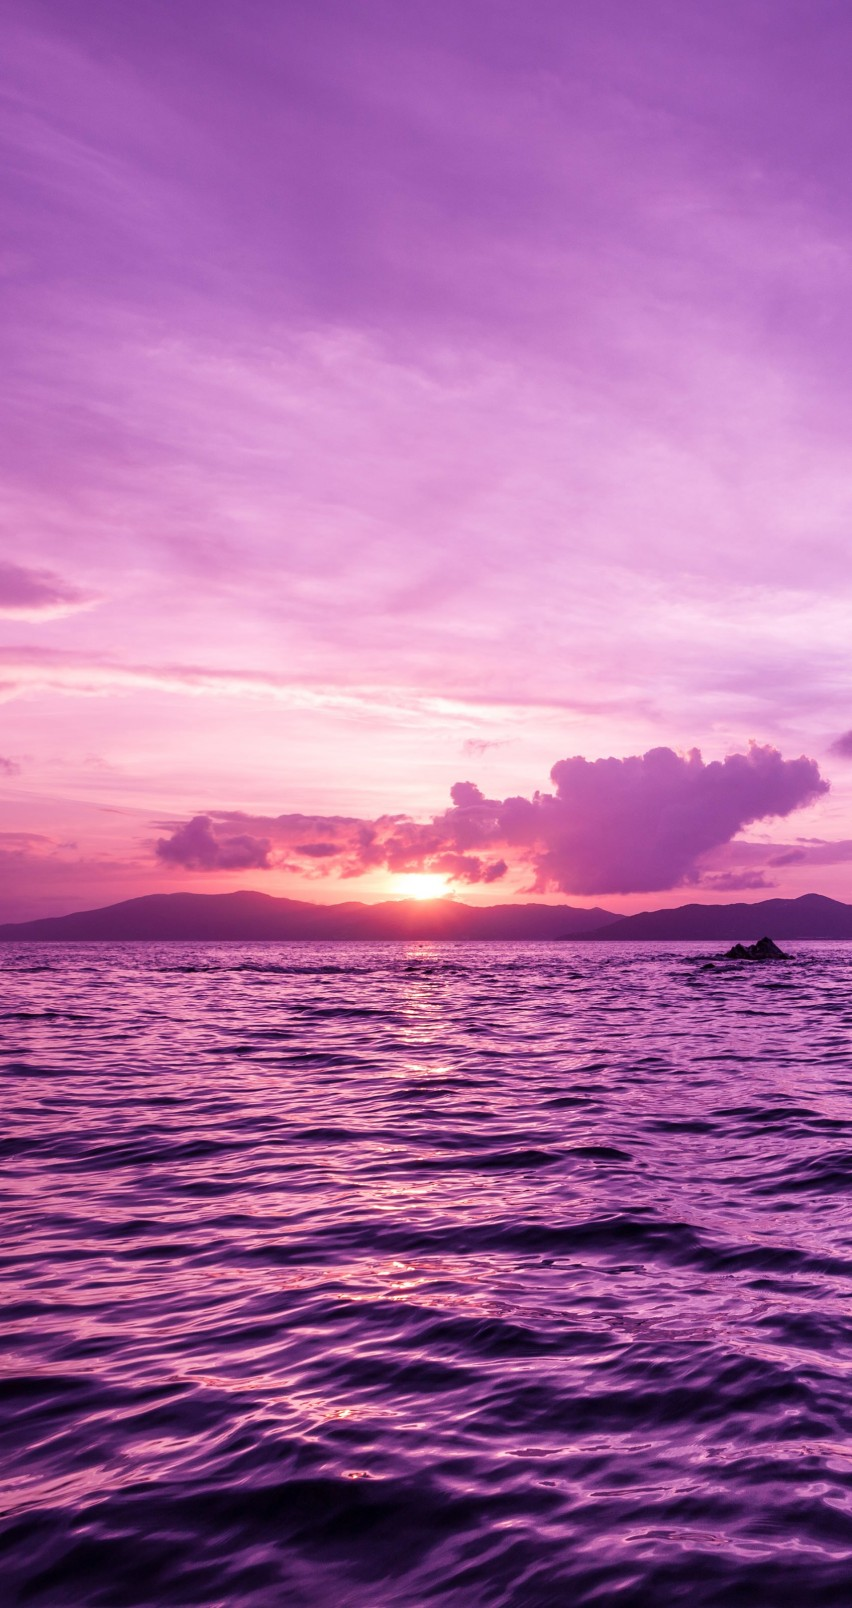 Pelican Island Sunset, British Virgin Islands Wallpaper for Apple iPhone 6 / 6s